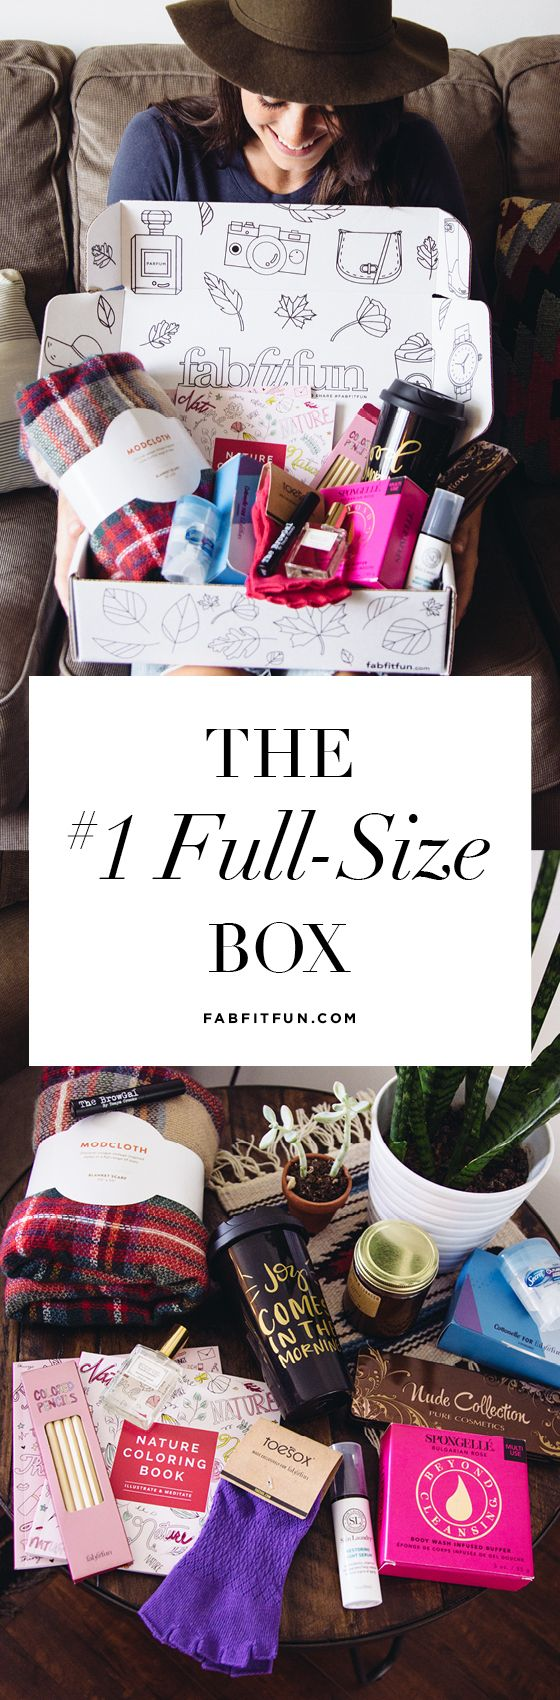 Treating yourself doesn't have break the bank. Say hello to FabFitFun and for just $39.99 you'll get a huge box stuffed with $200+ of full-size, luxury beauty, fashion, and wellness finds. Use code AUTUMN. Our boxes are delivered once a season. FREE Shipping. If you don't love everything in it, return it for a full refund...but we promise you won't want to!